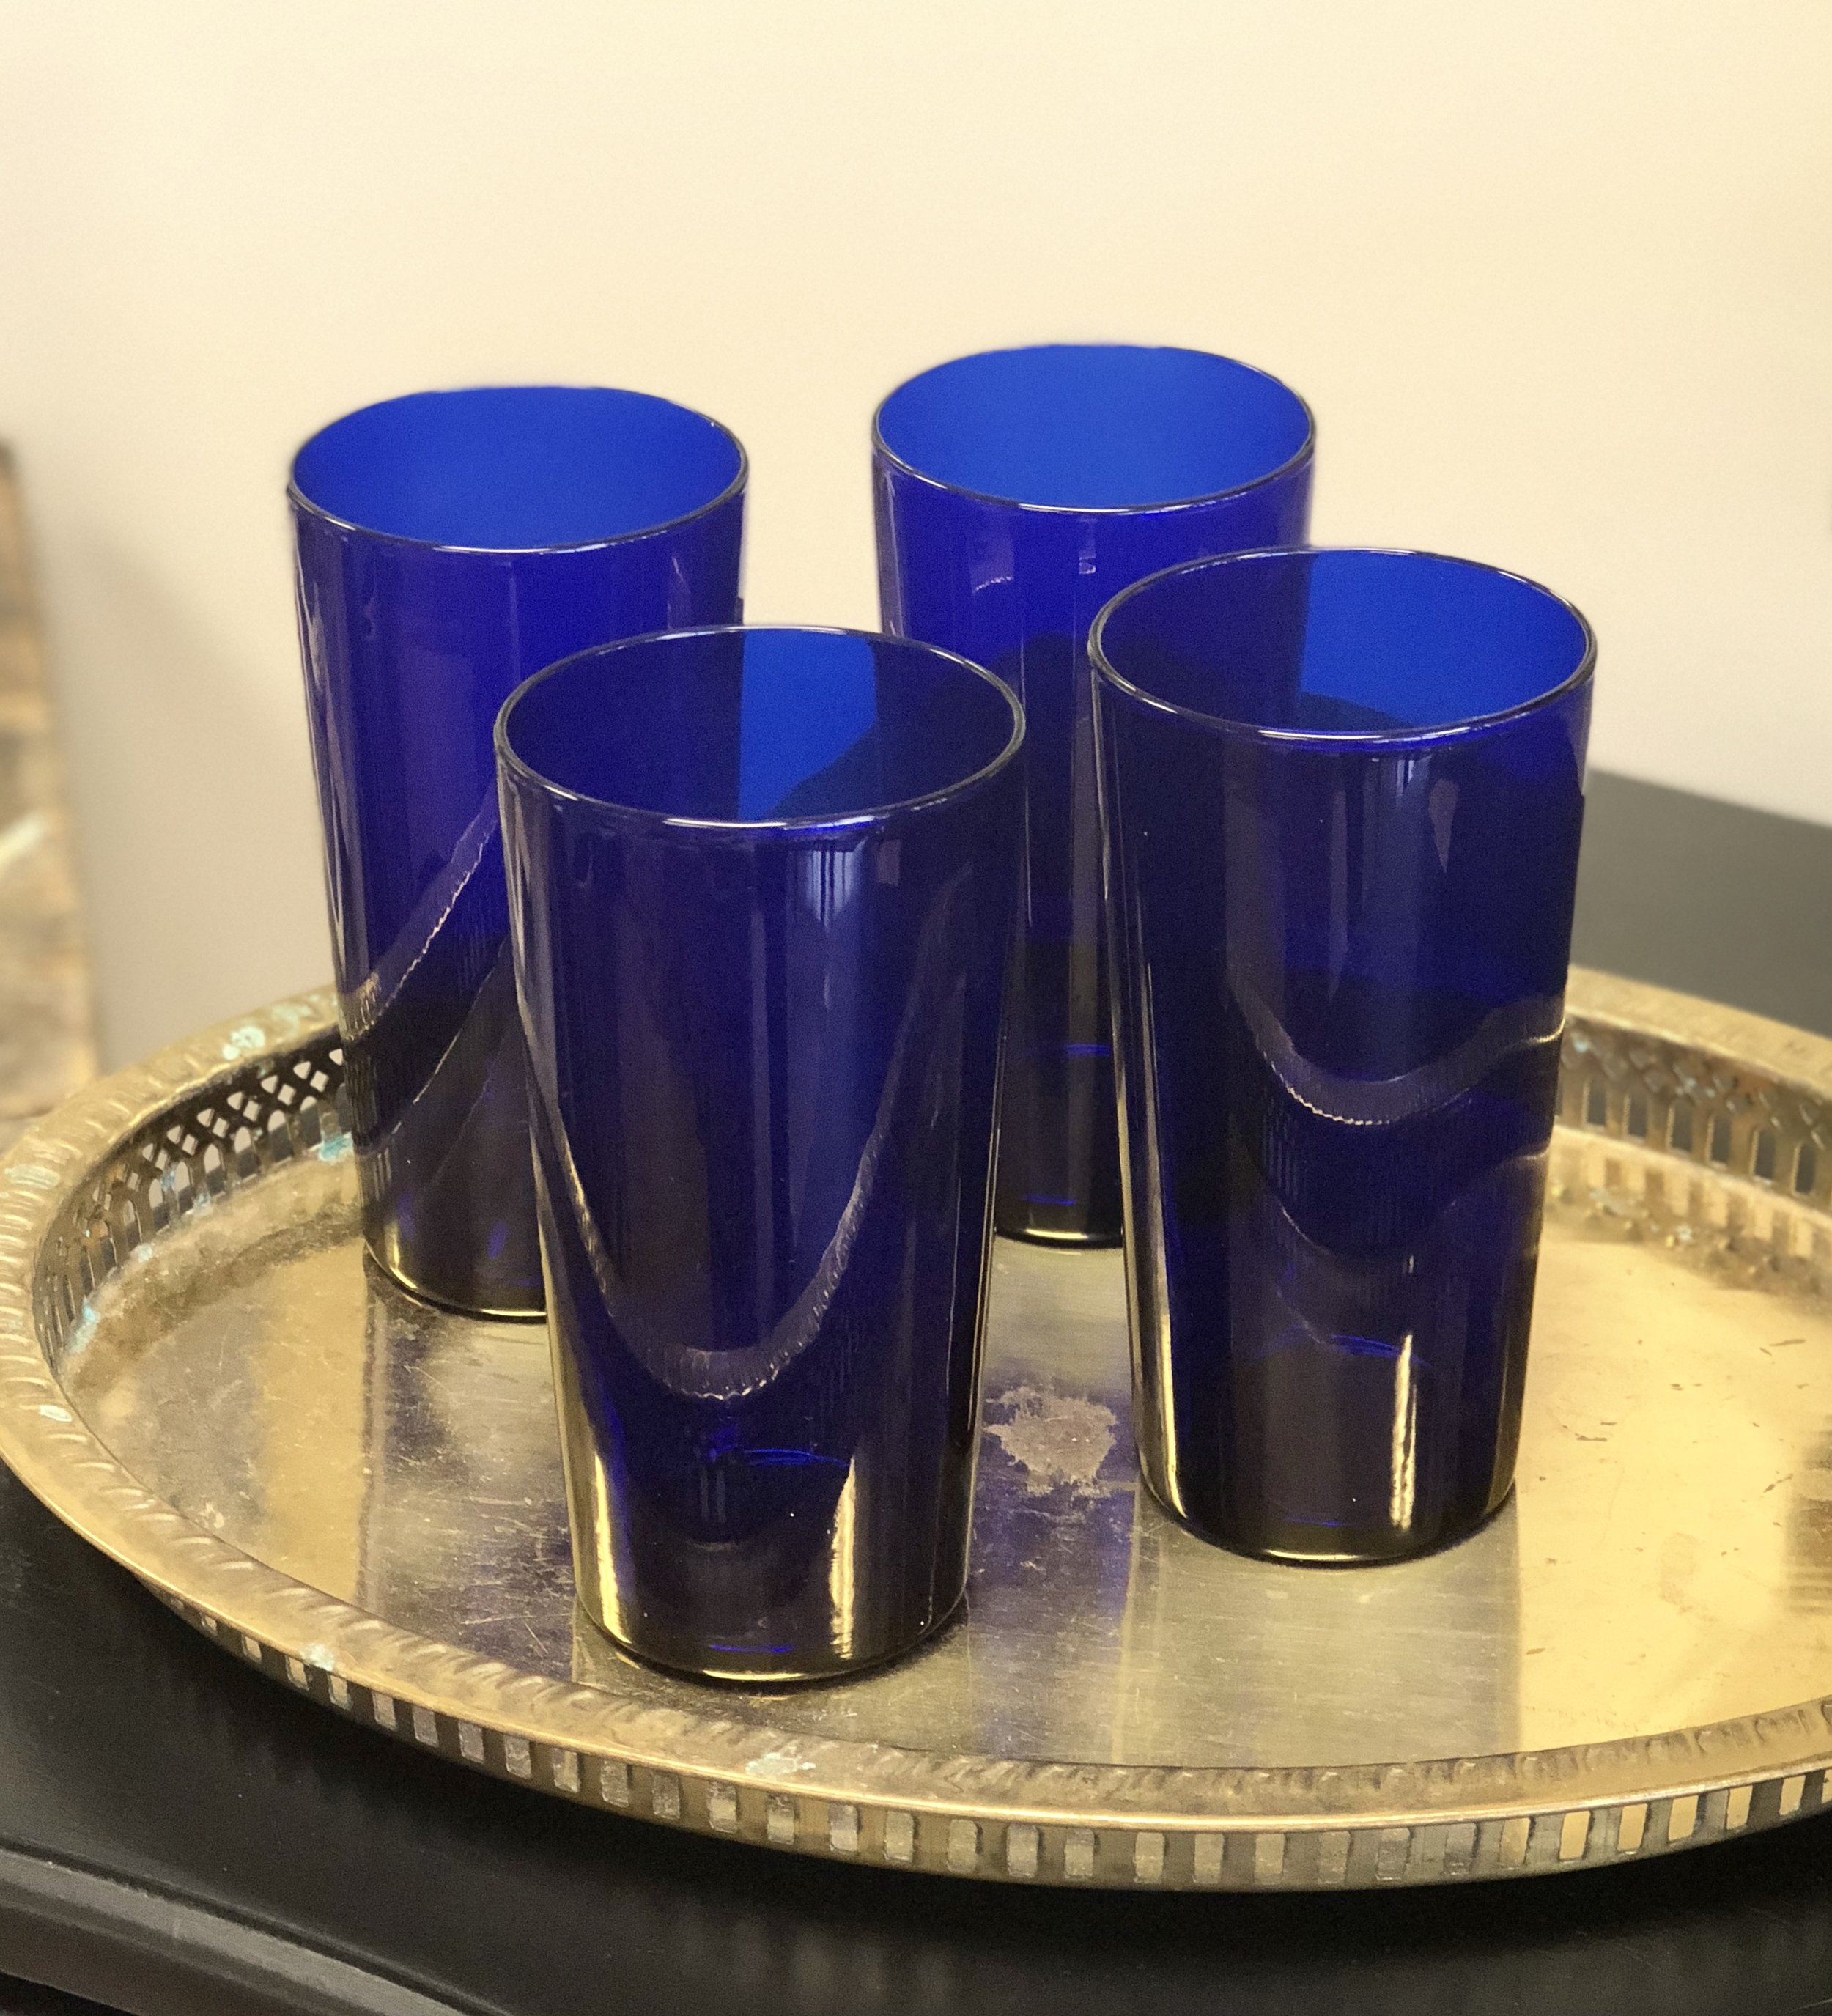 There's nothing more classic than cobalt high ball glasses on a brass tray.